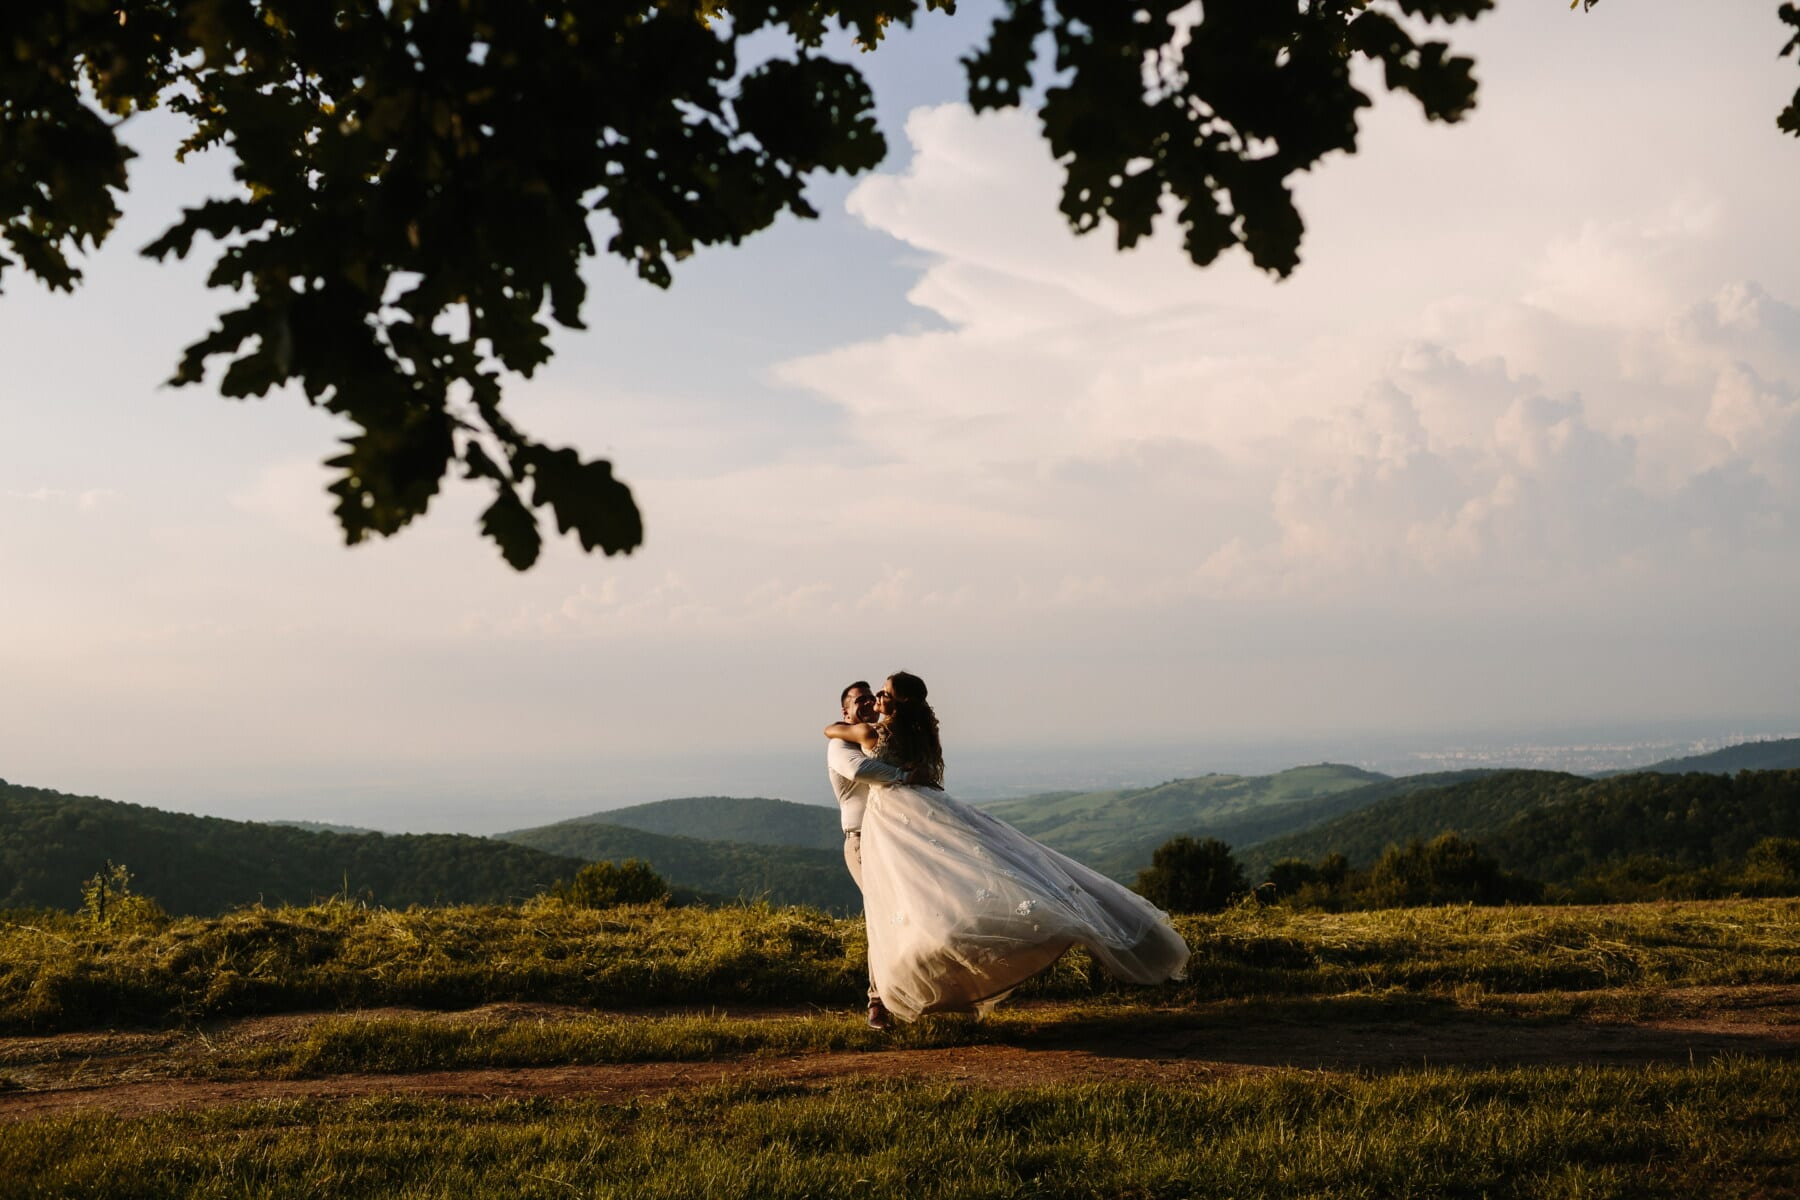 young woman, man, romantic, love, love date, countryside, hiking, hilltop, bride, wedding